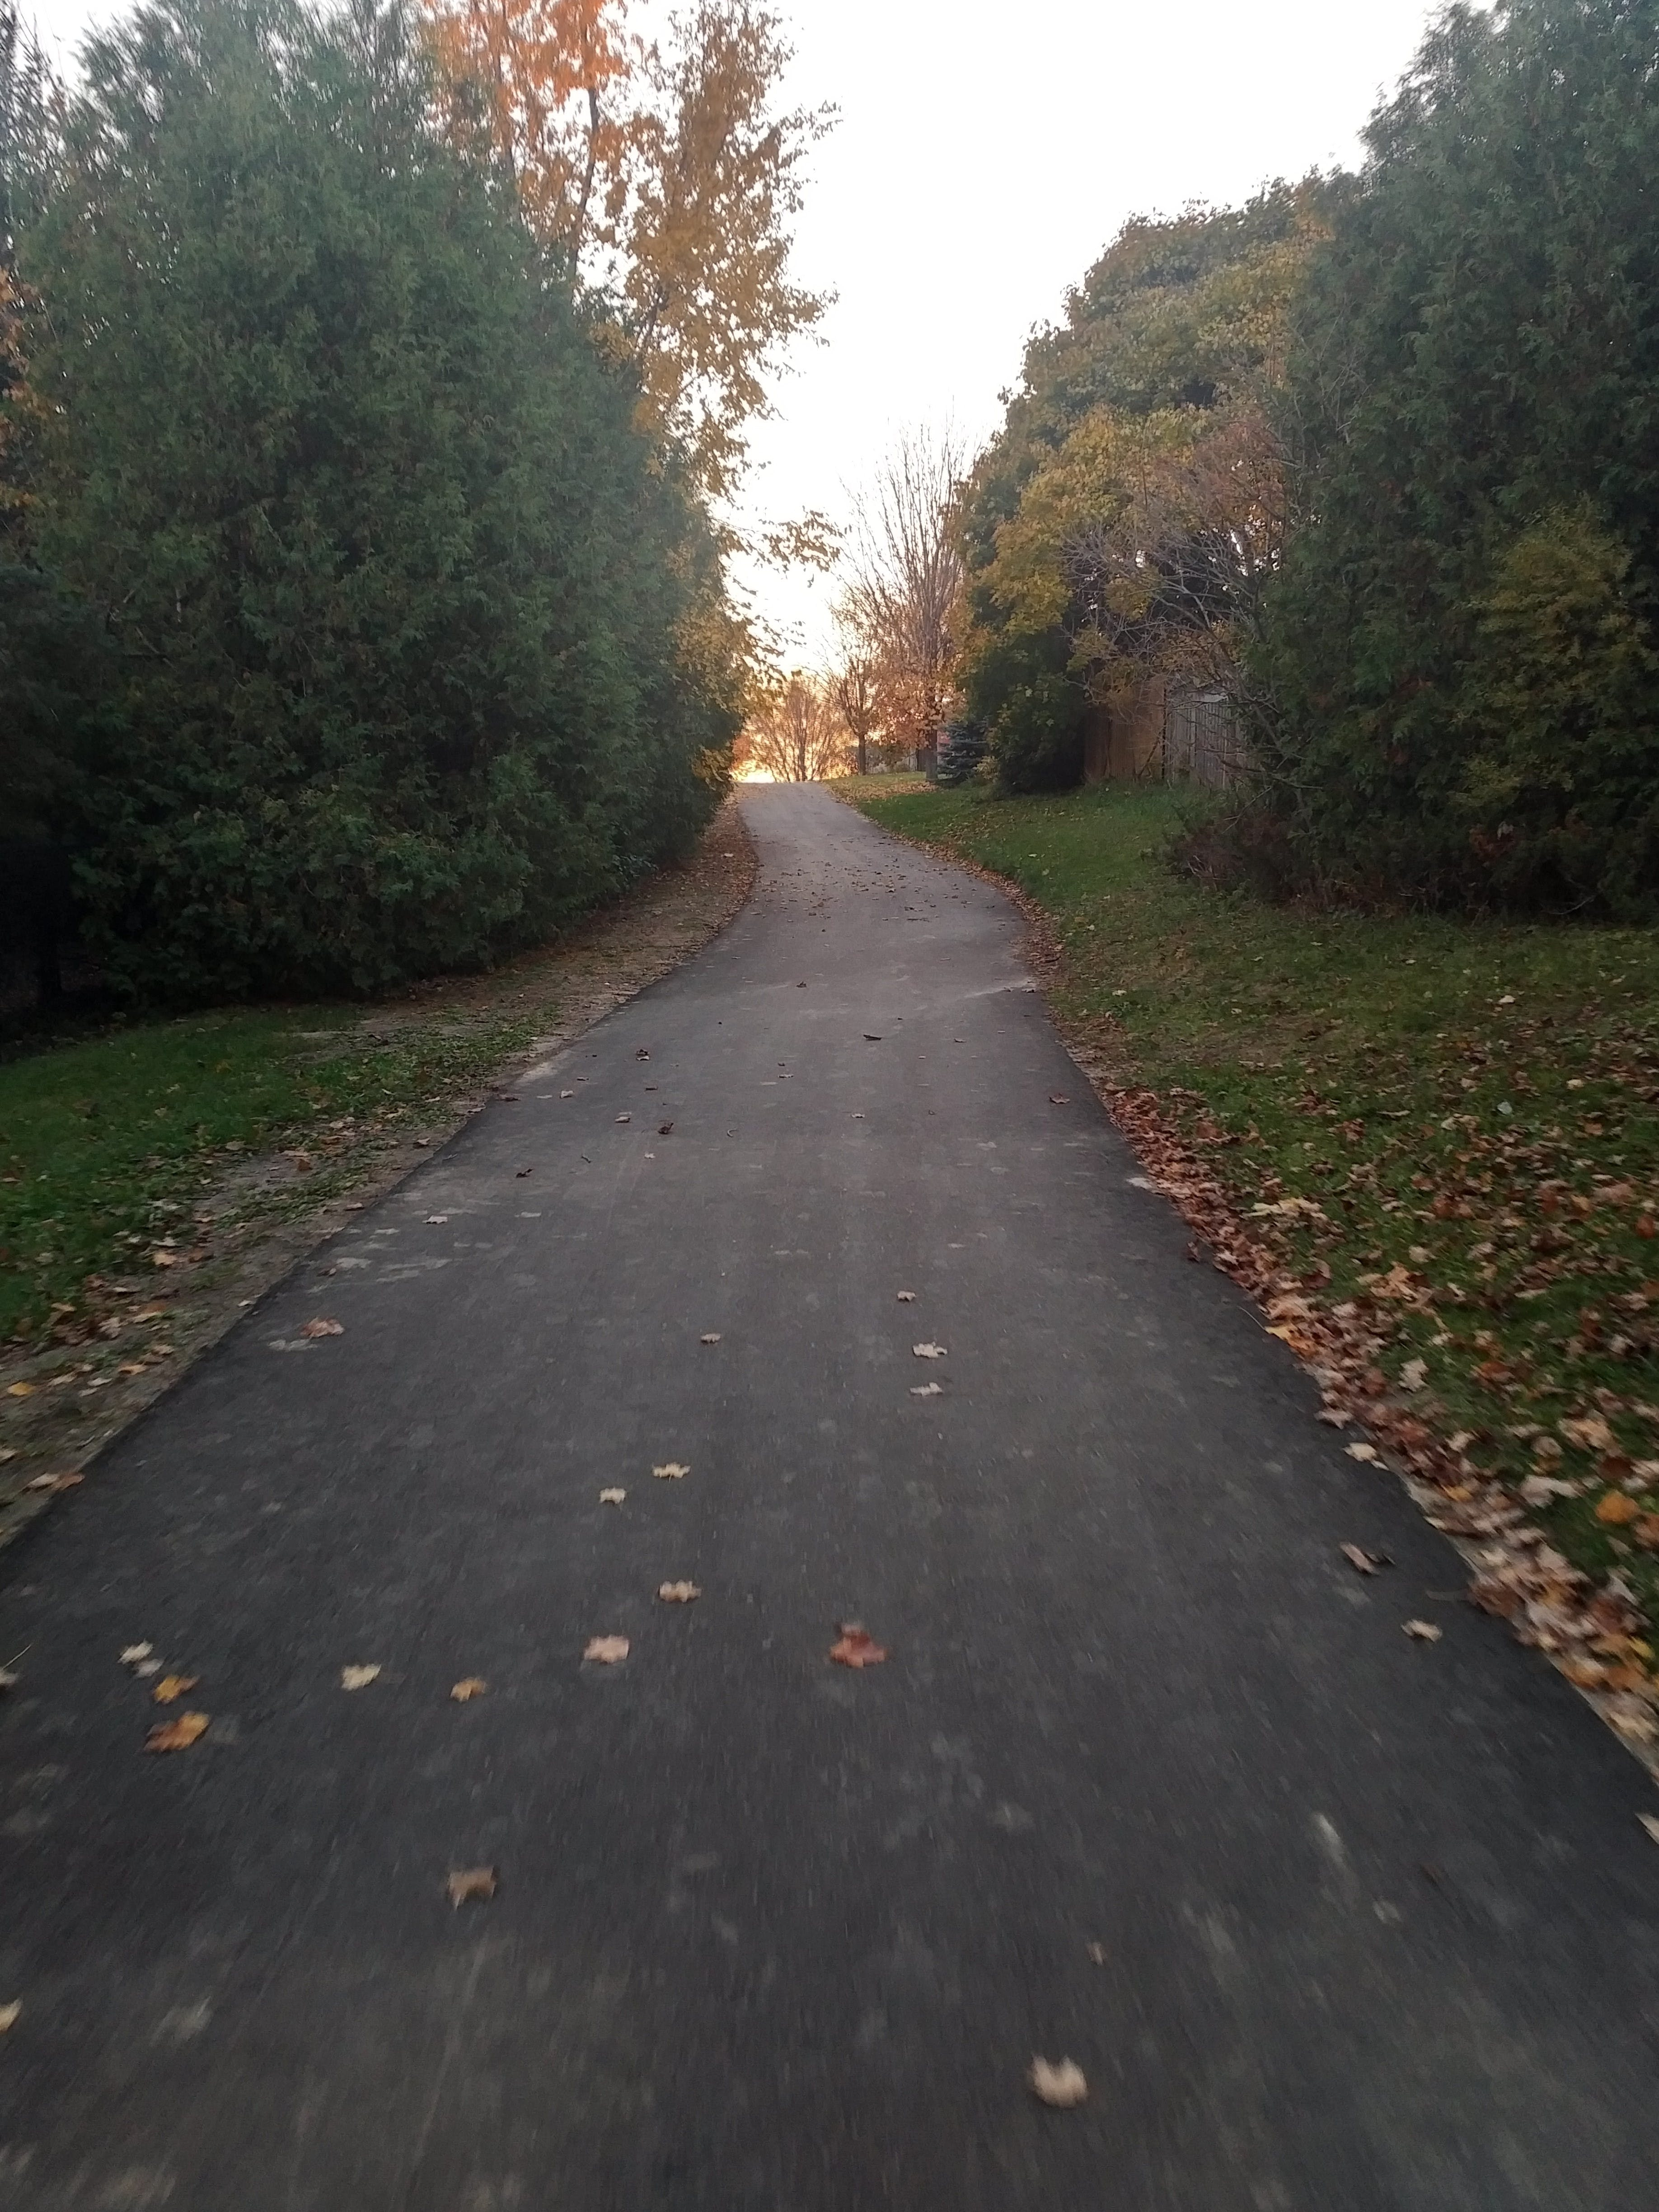 Trail conditions after paving